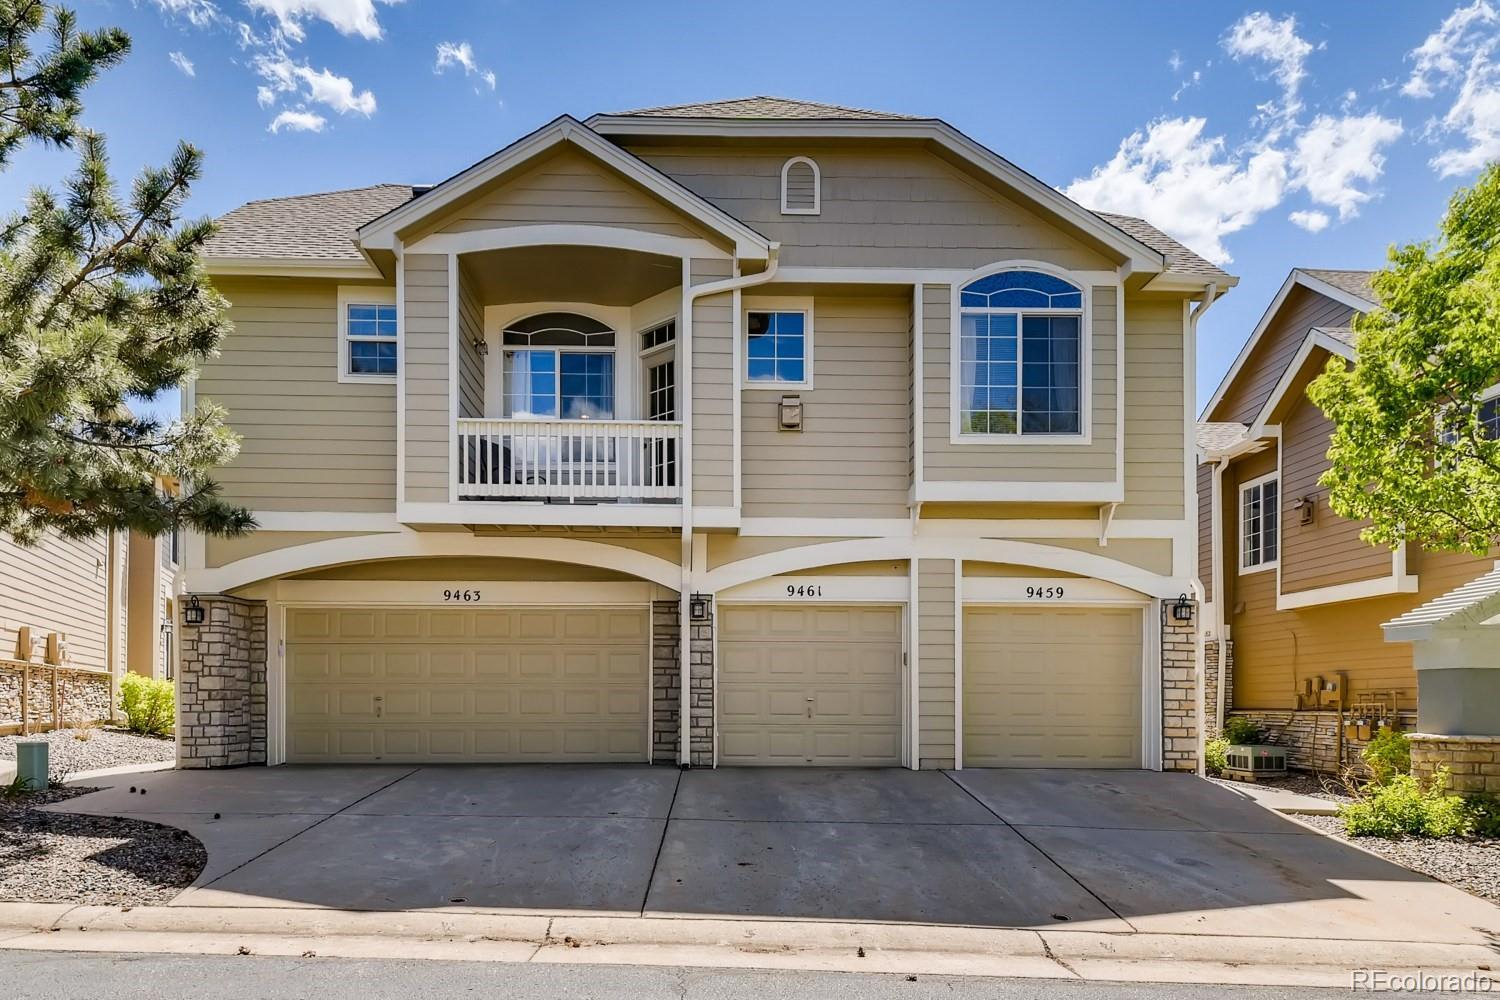 9459 Carlyle Park Place, Highlands Ranch, CO 80129 - #: 5882772